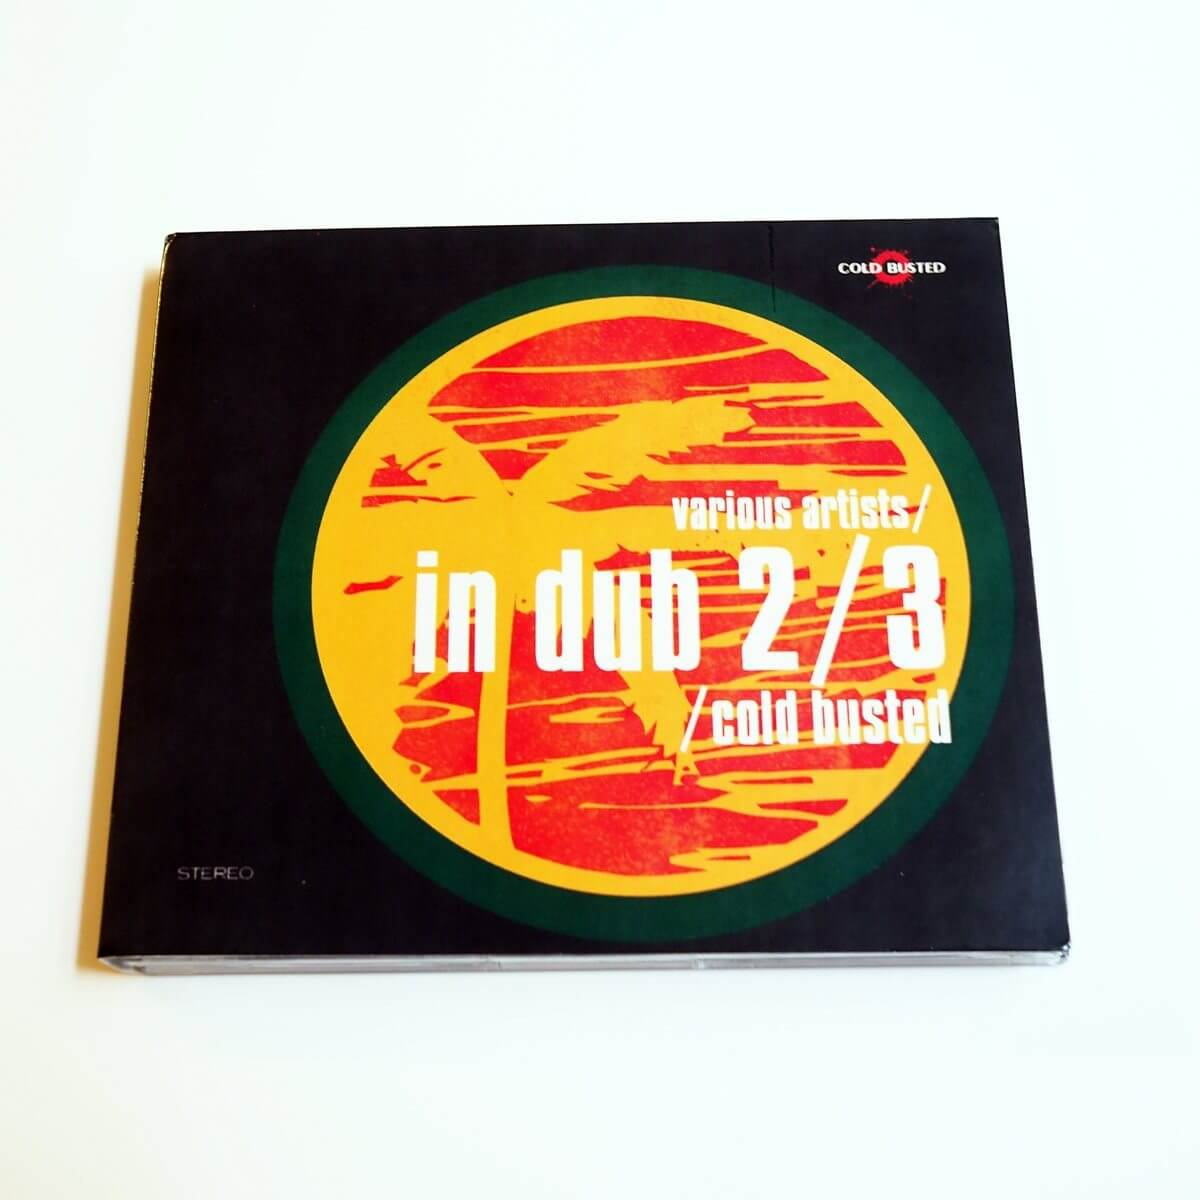 Various Artists - In Dub 3 - In Dub 2 & 3 Limited Edition Double Compact Disc Cold Busted